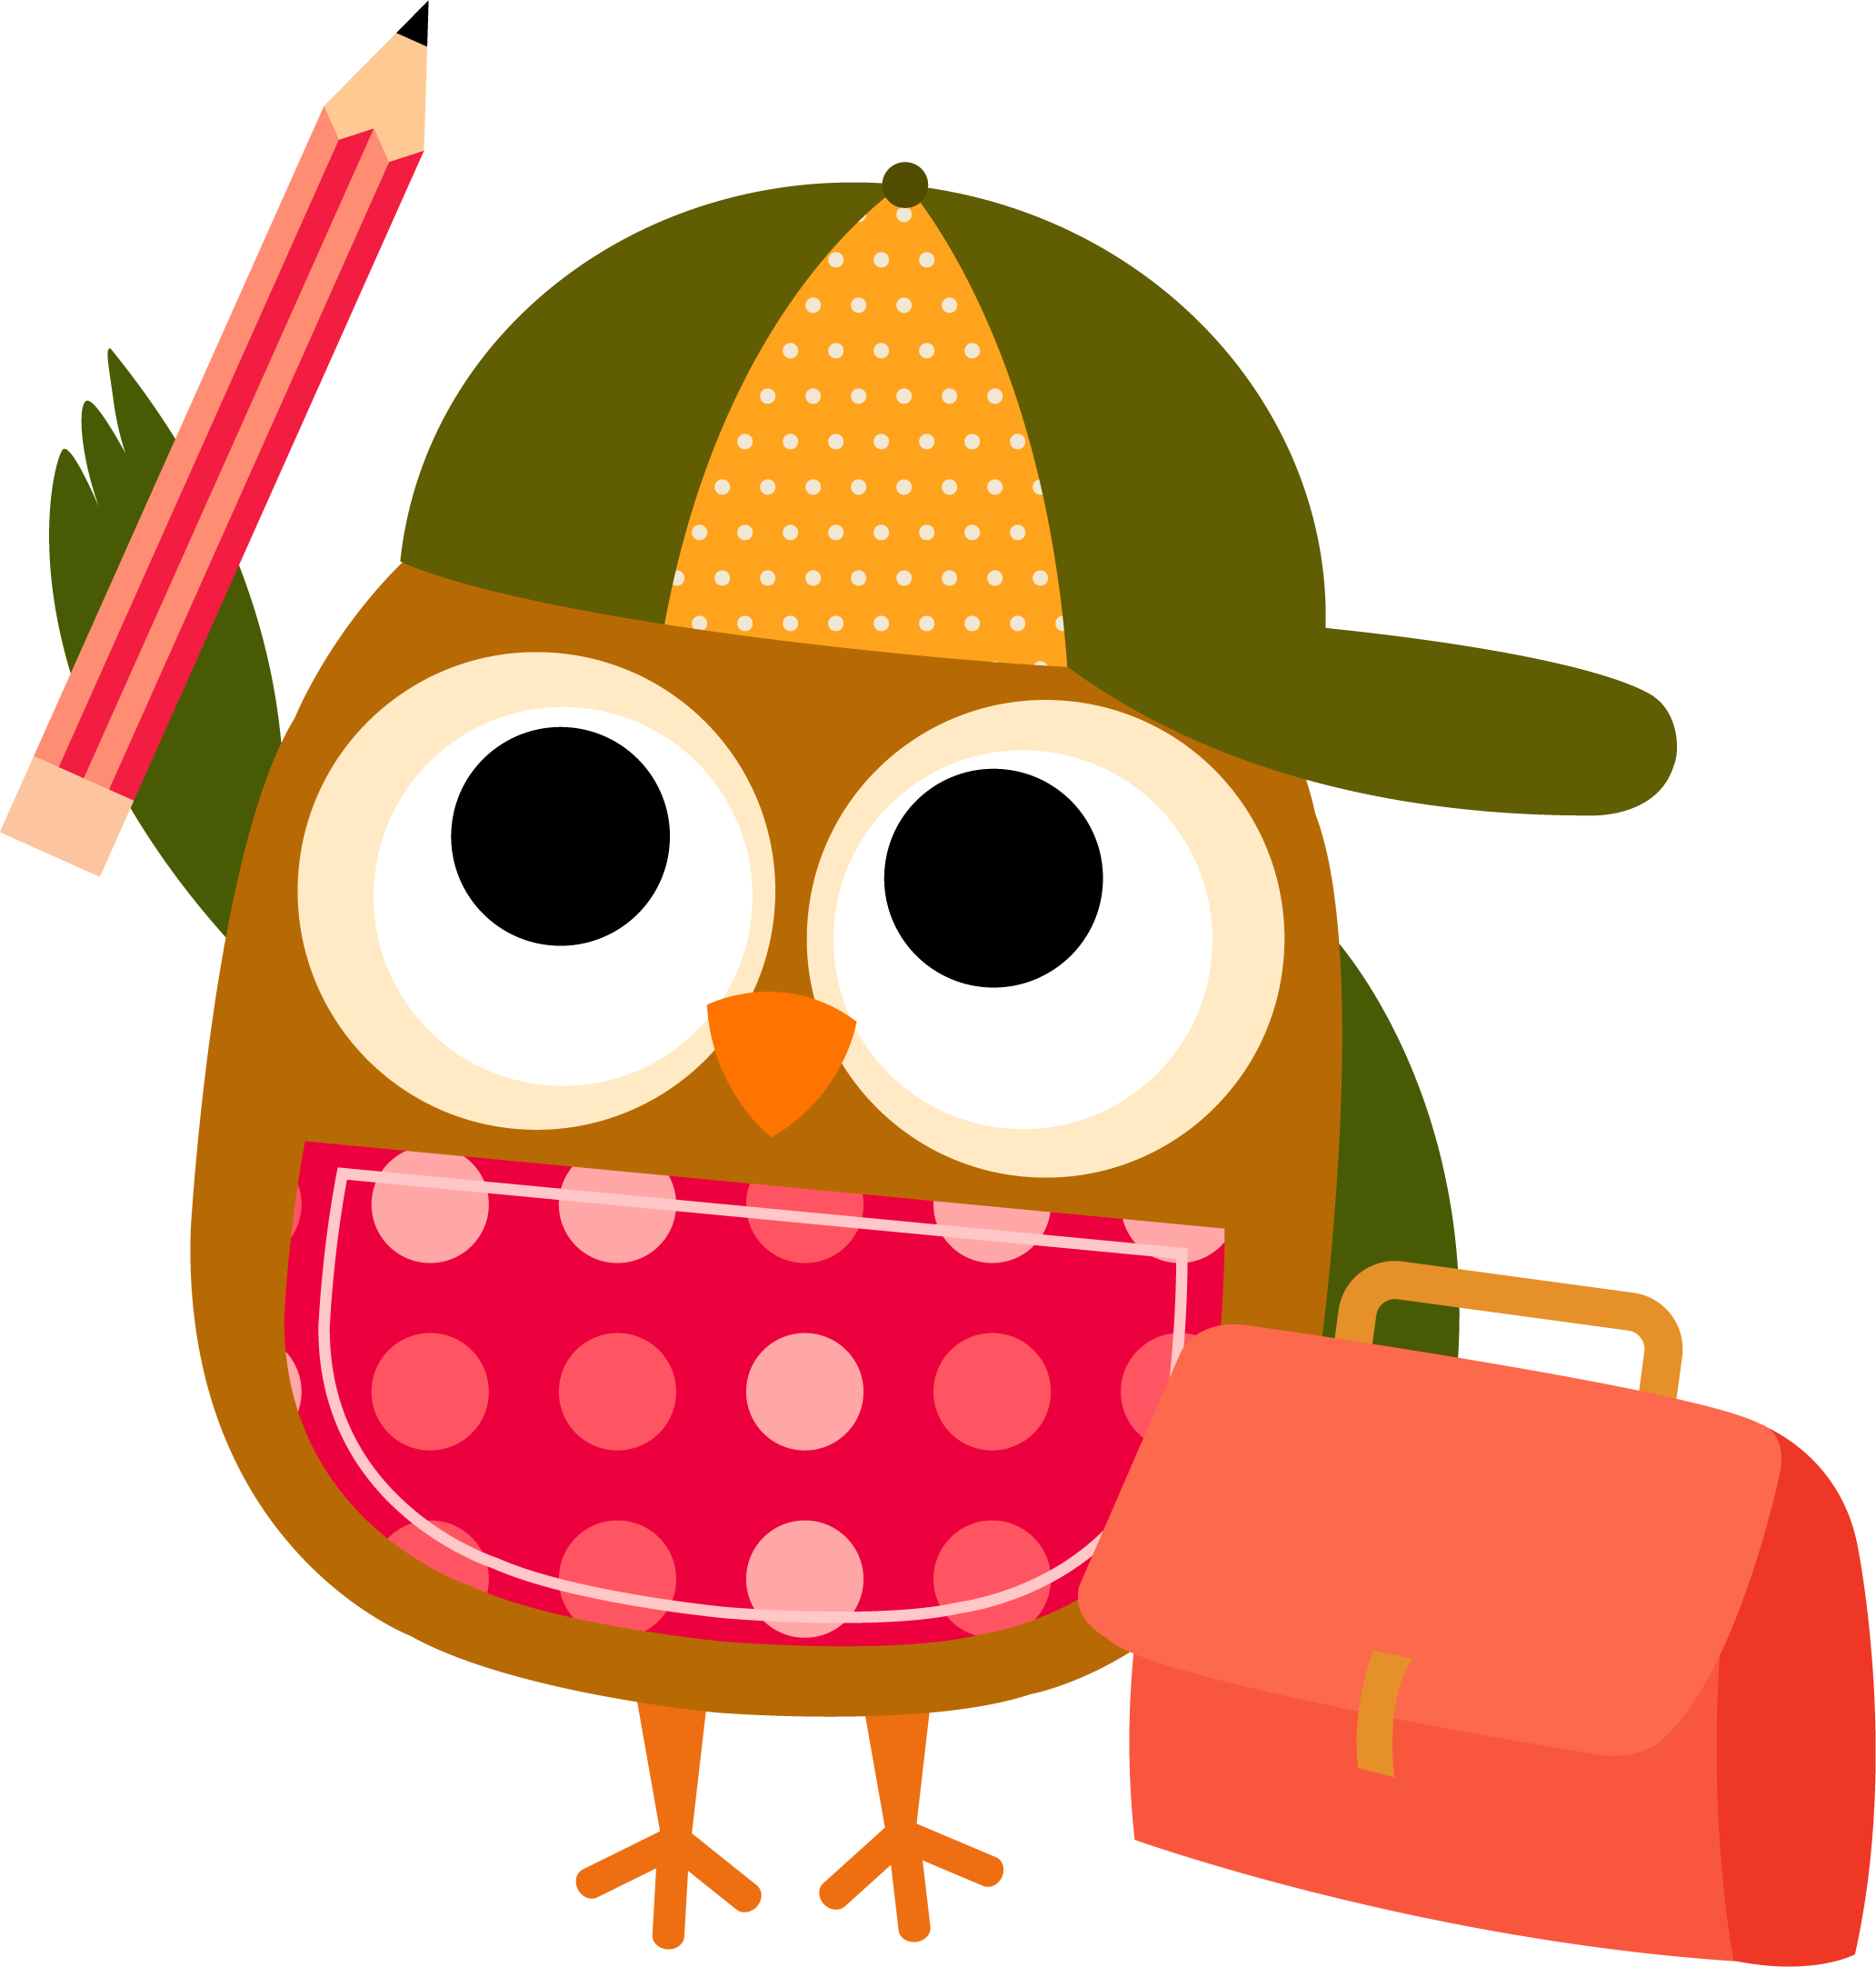 Free elementary school clipart png freeuse library April owl clipart - ClipartFest png freeuse library